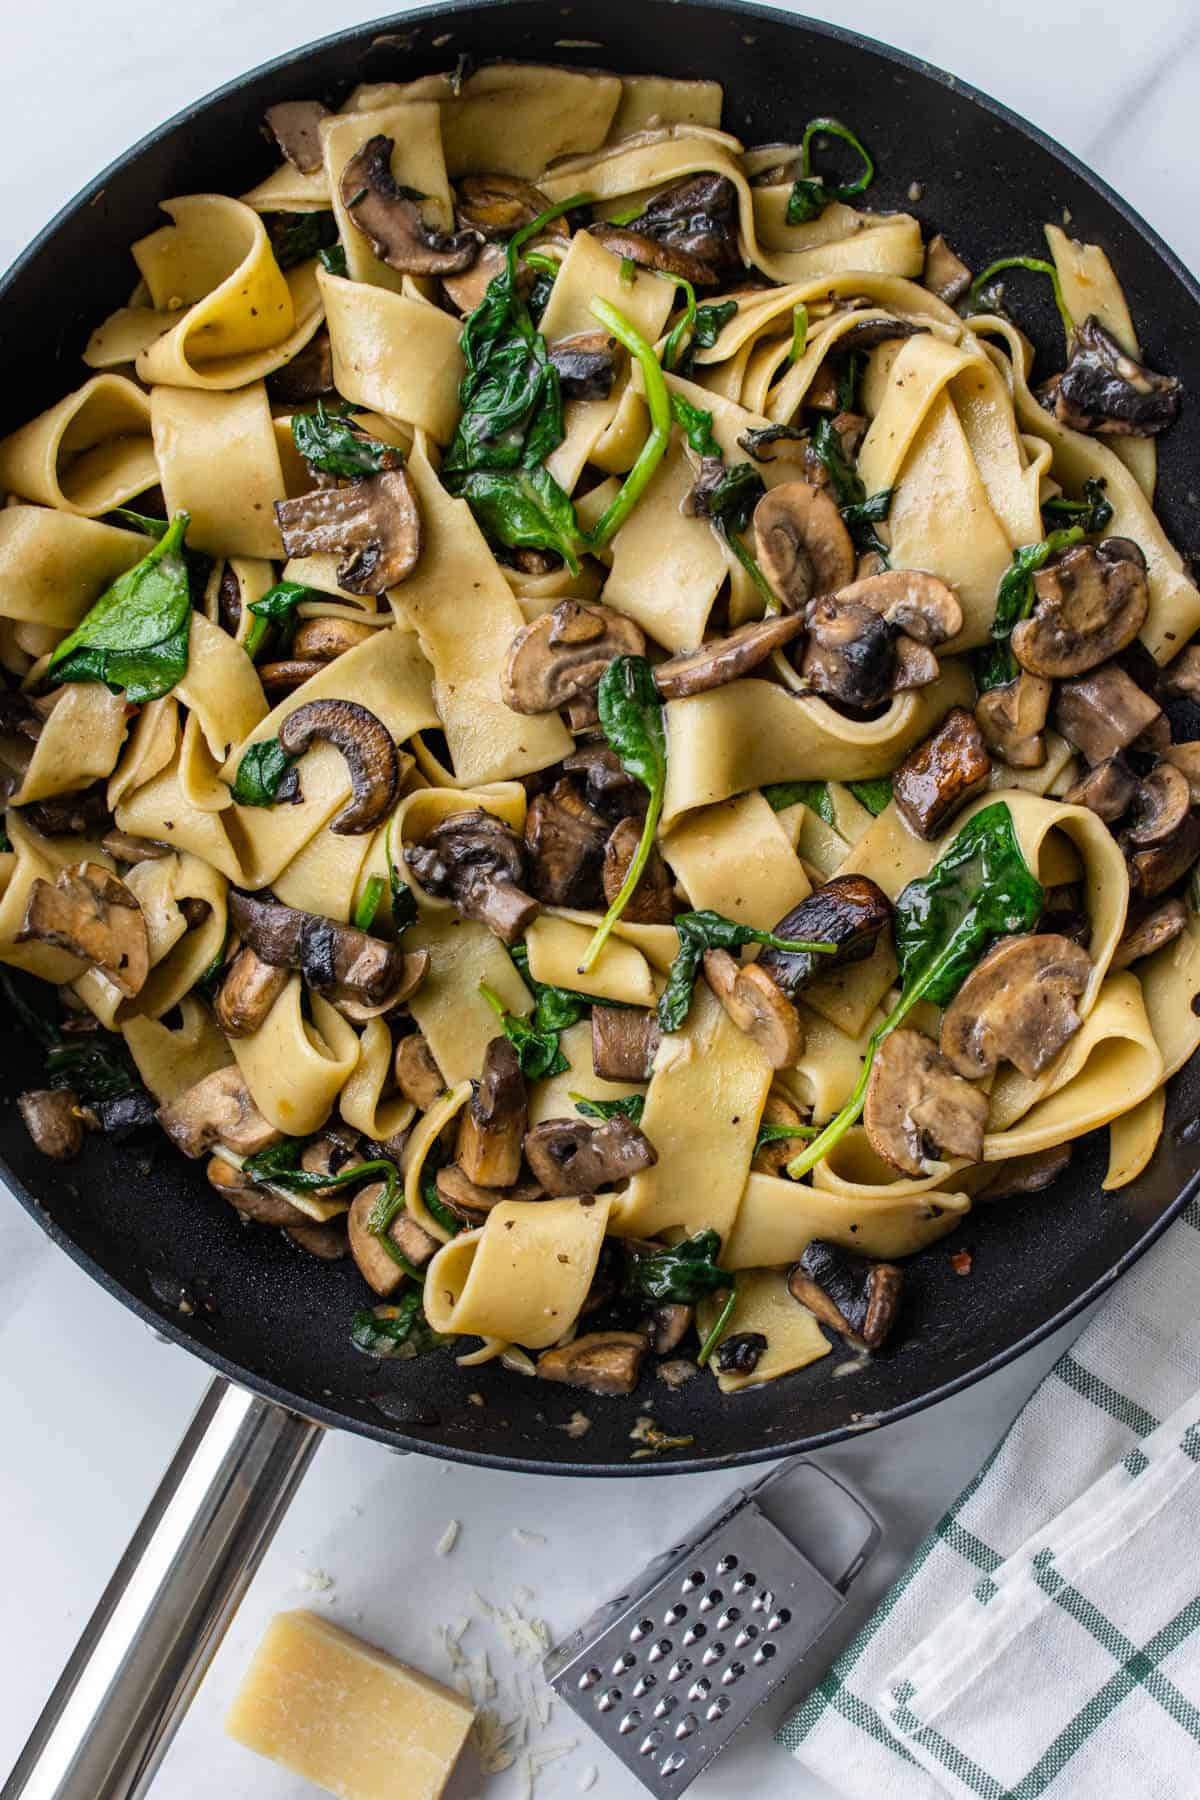 Pappardelle pasta with mushrooms in a pan